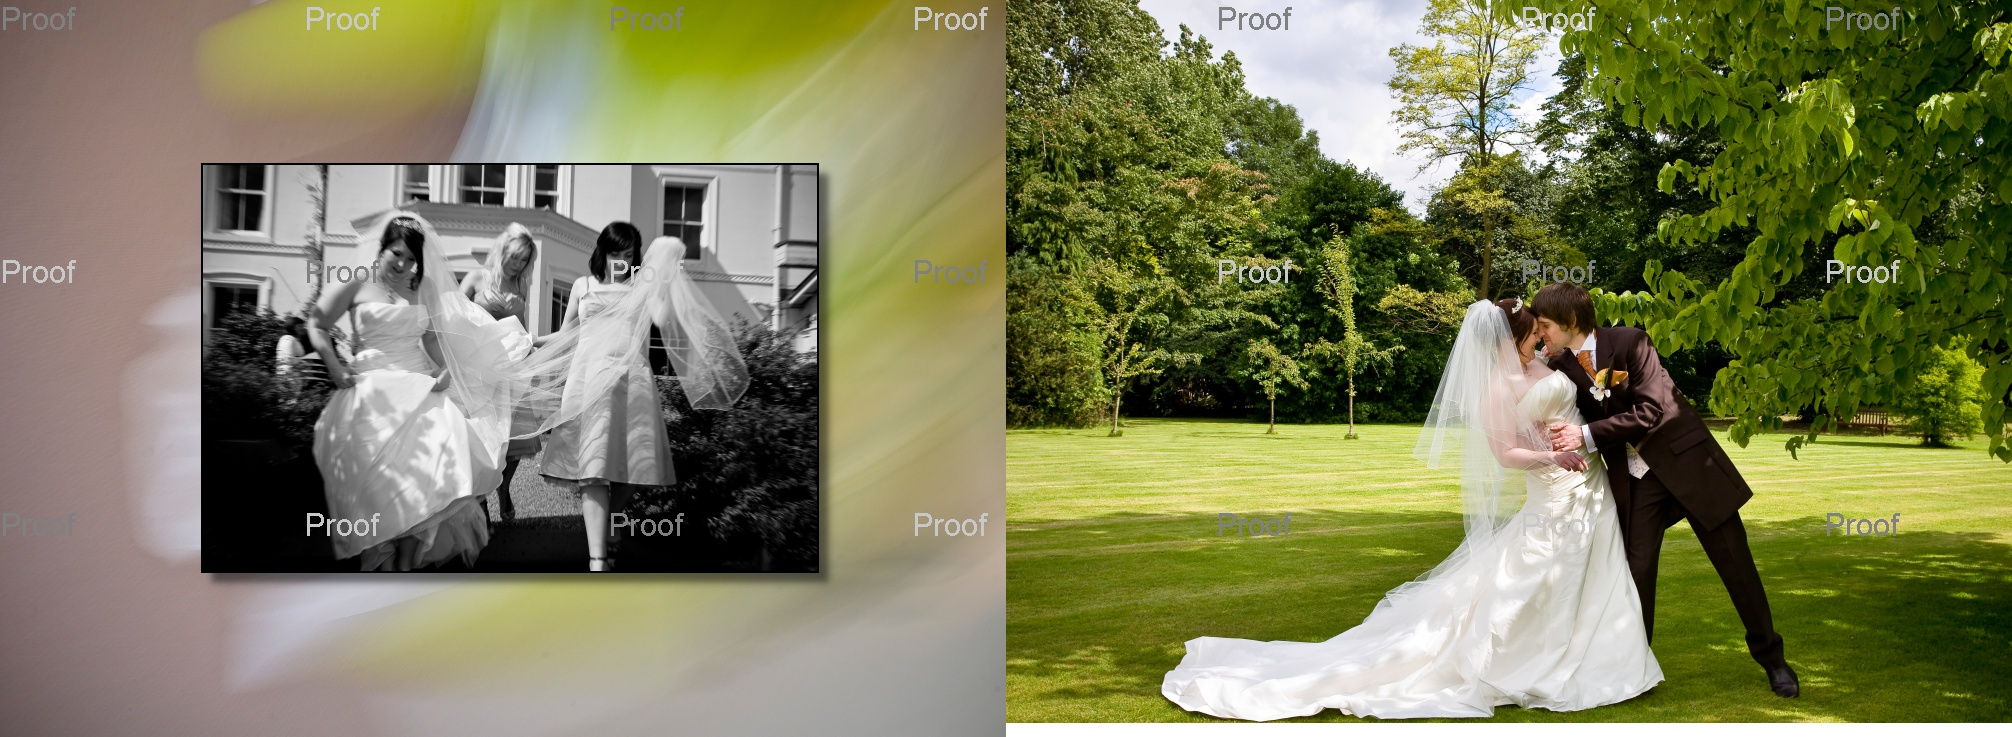 pages 46-47 of wedding storybook album with bride and groom in grounds of Chancellors Hotel & Conference Centre